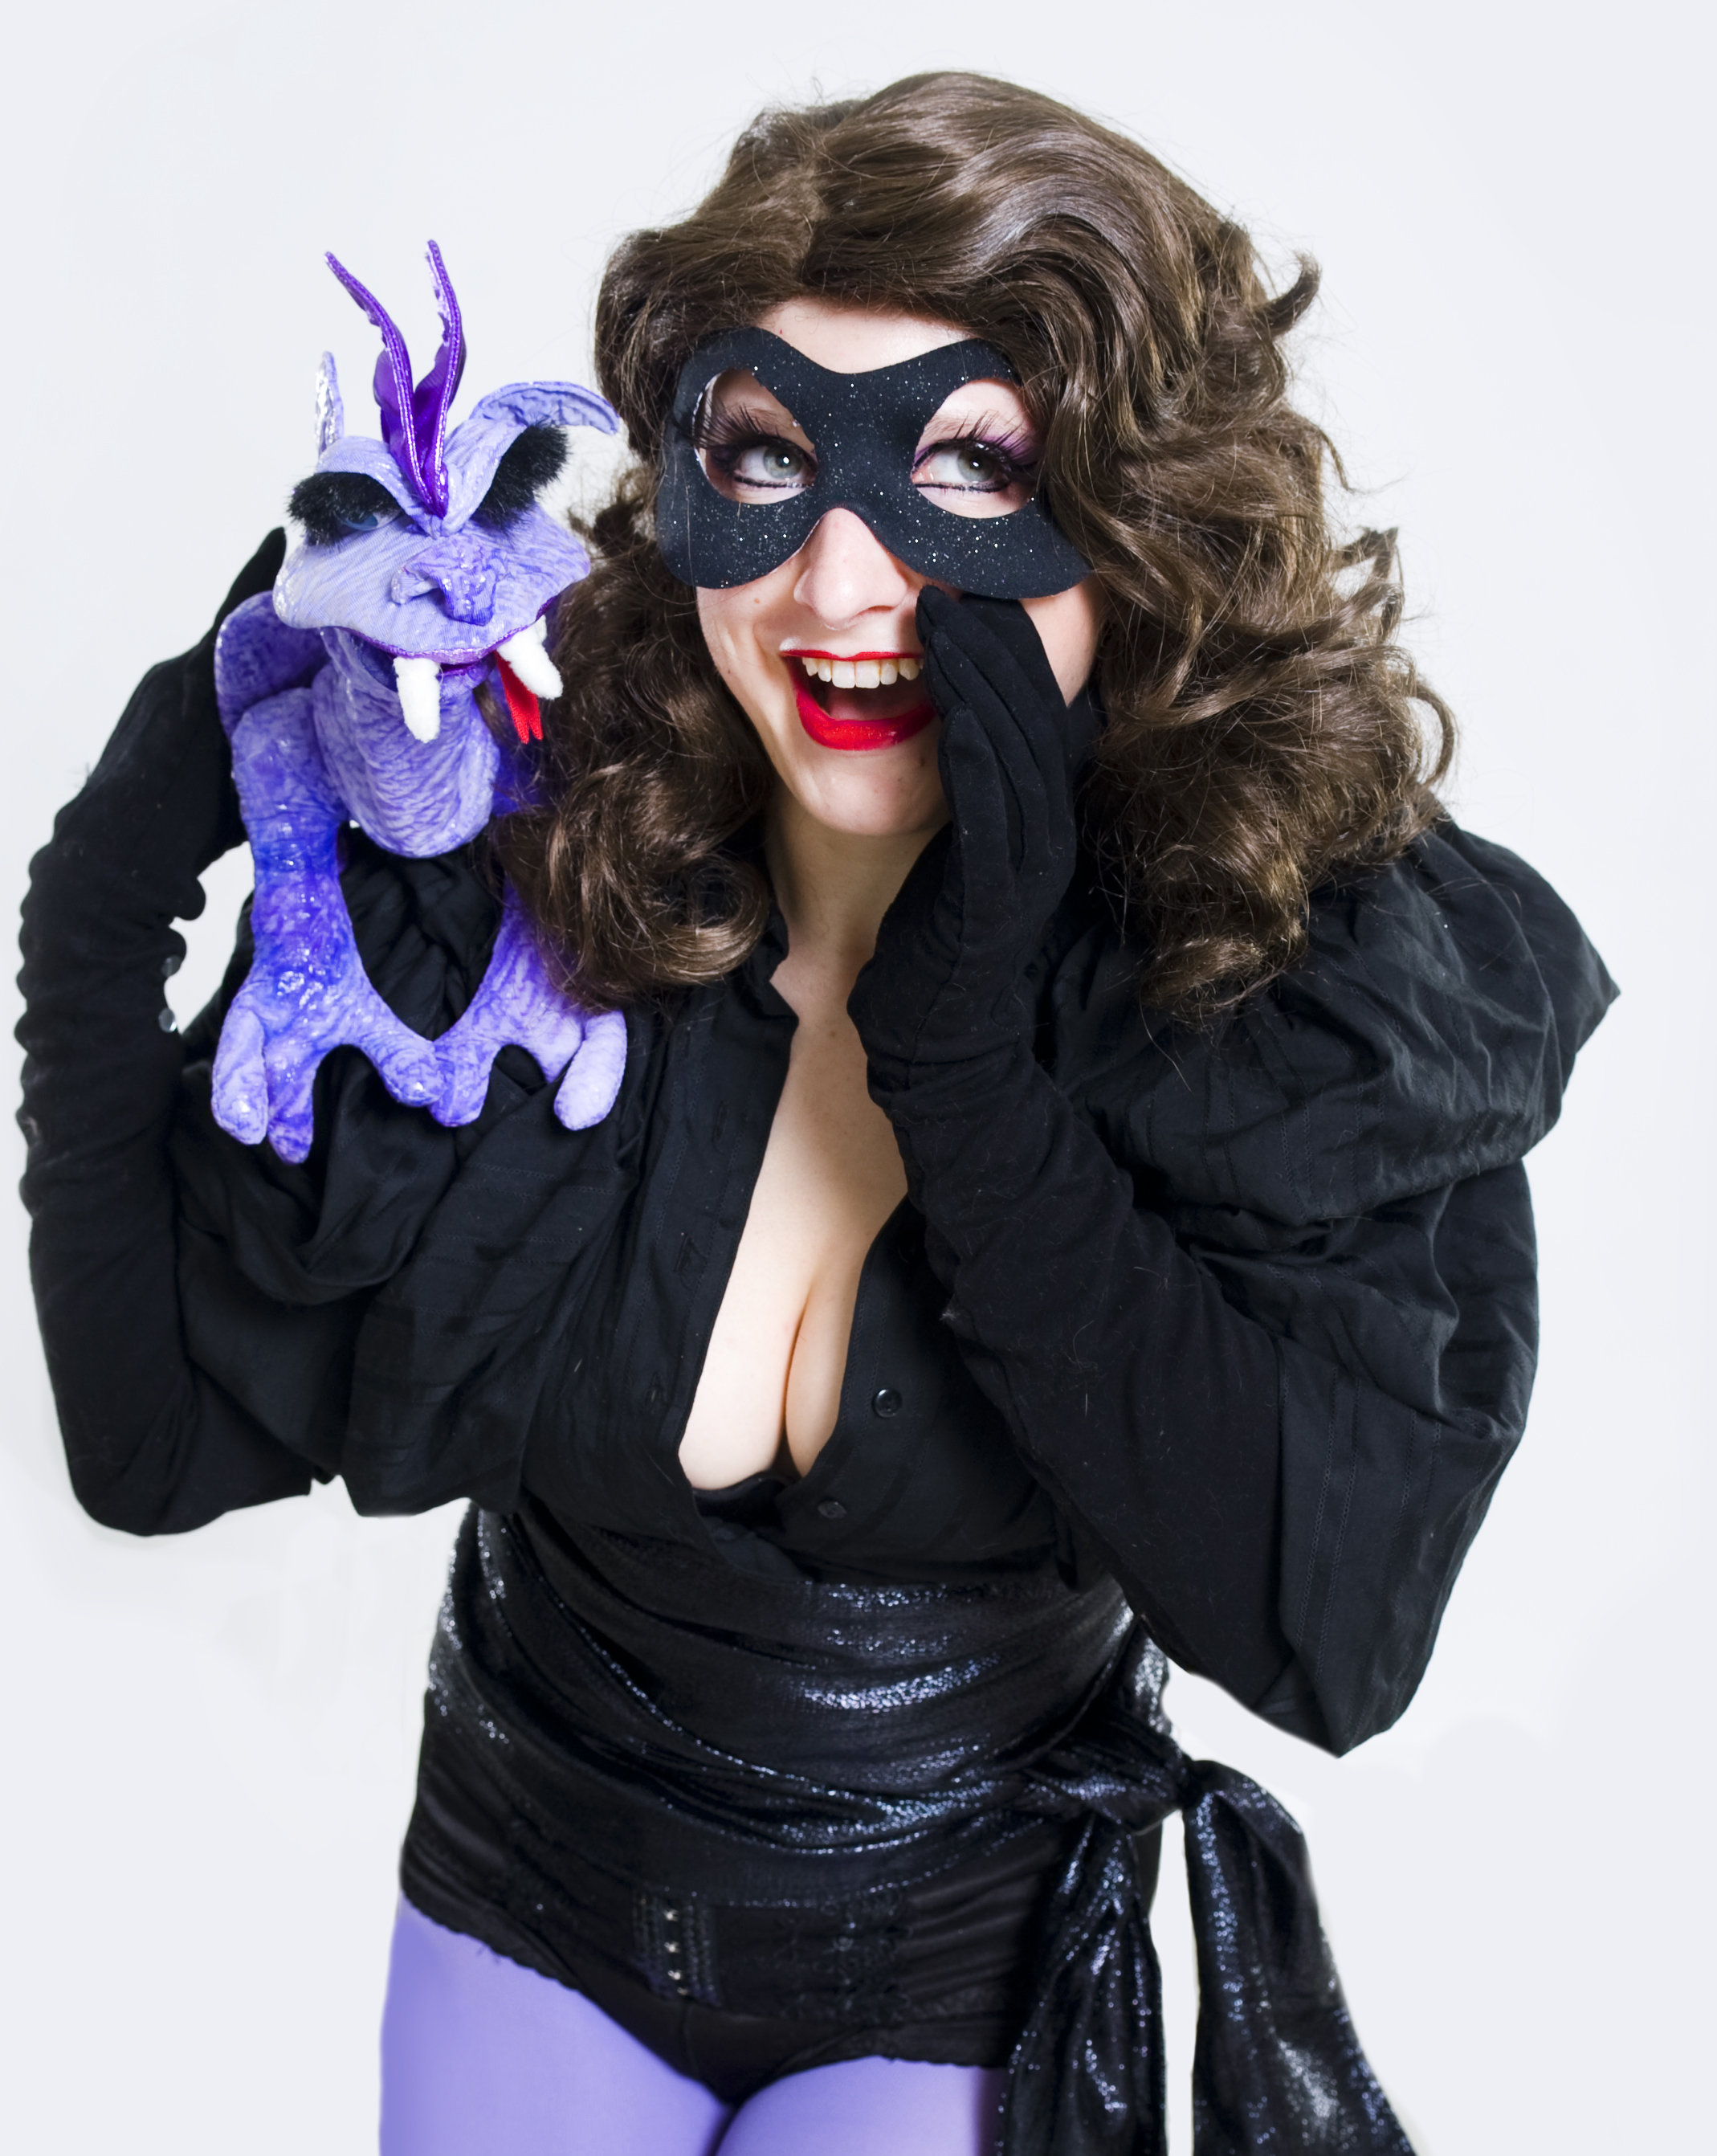 Lefty Lucy as Kitty Pryde